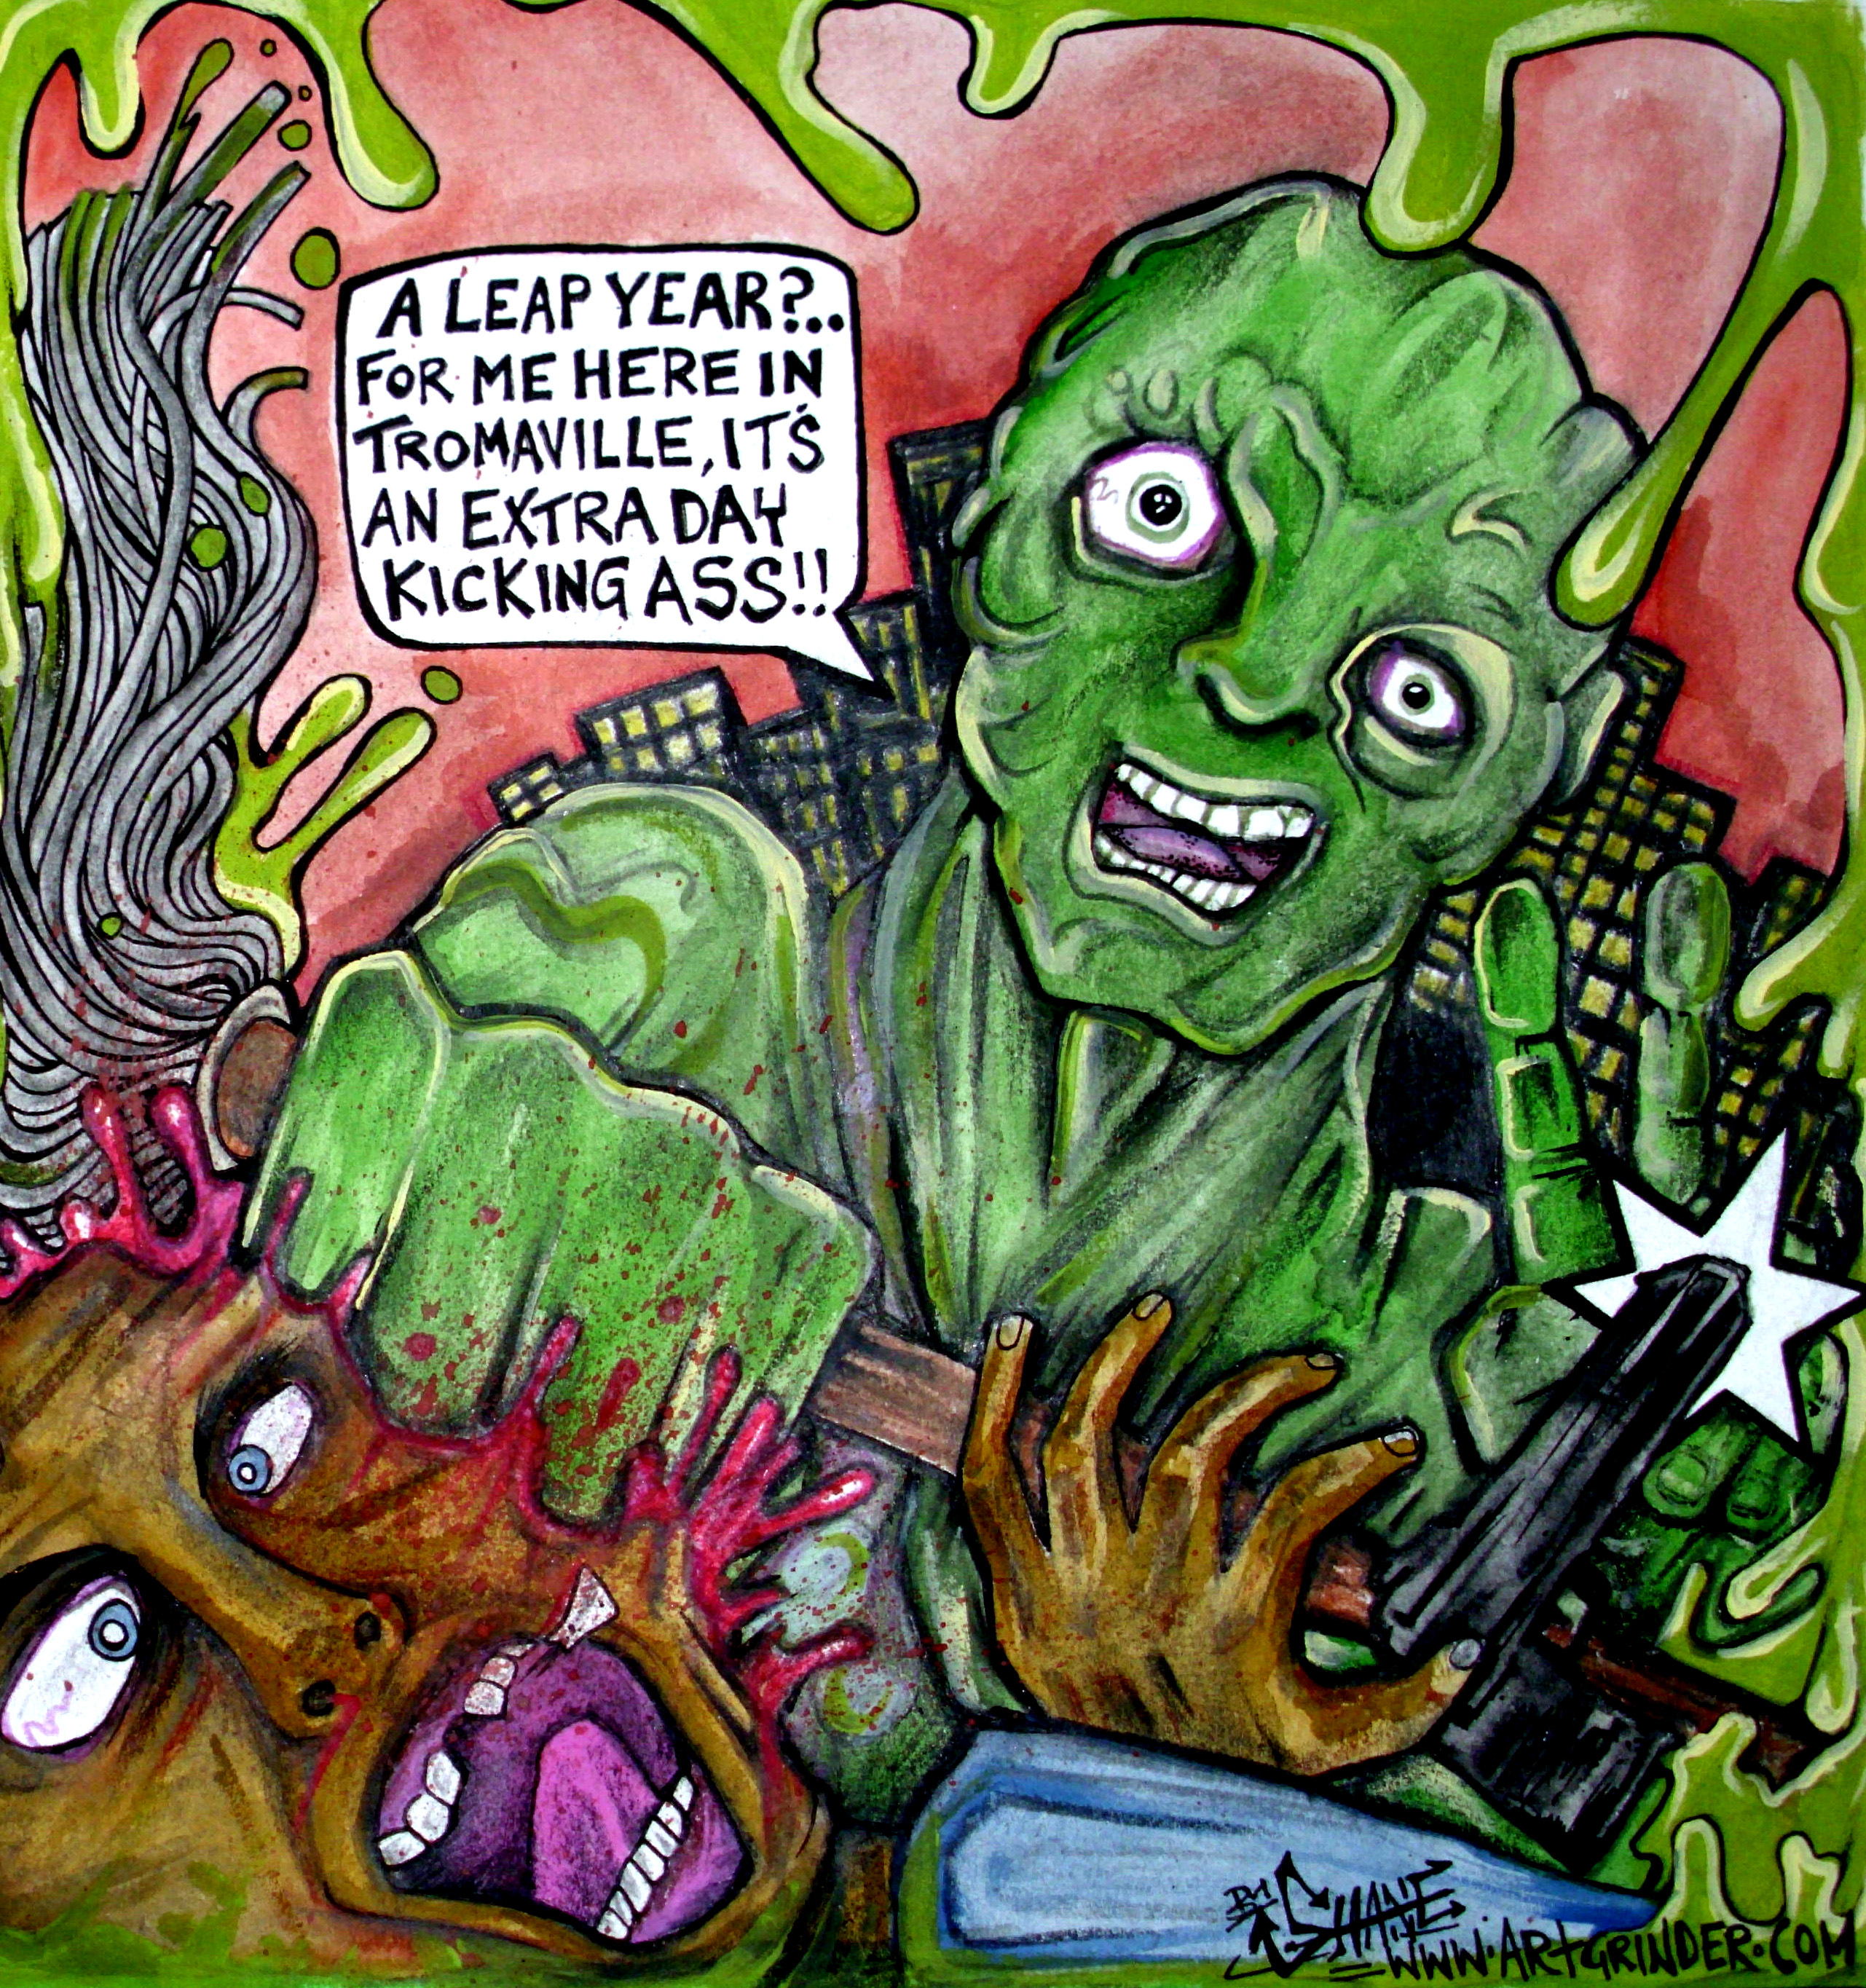 TROMA ART COMPETITION WINNER